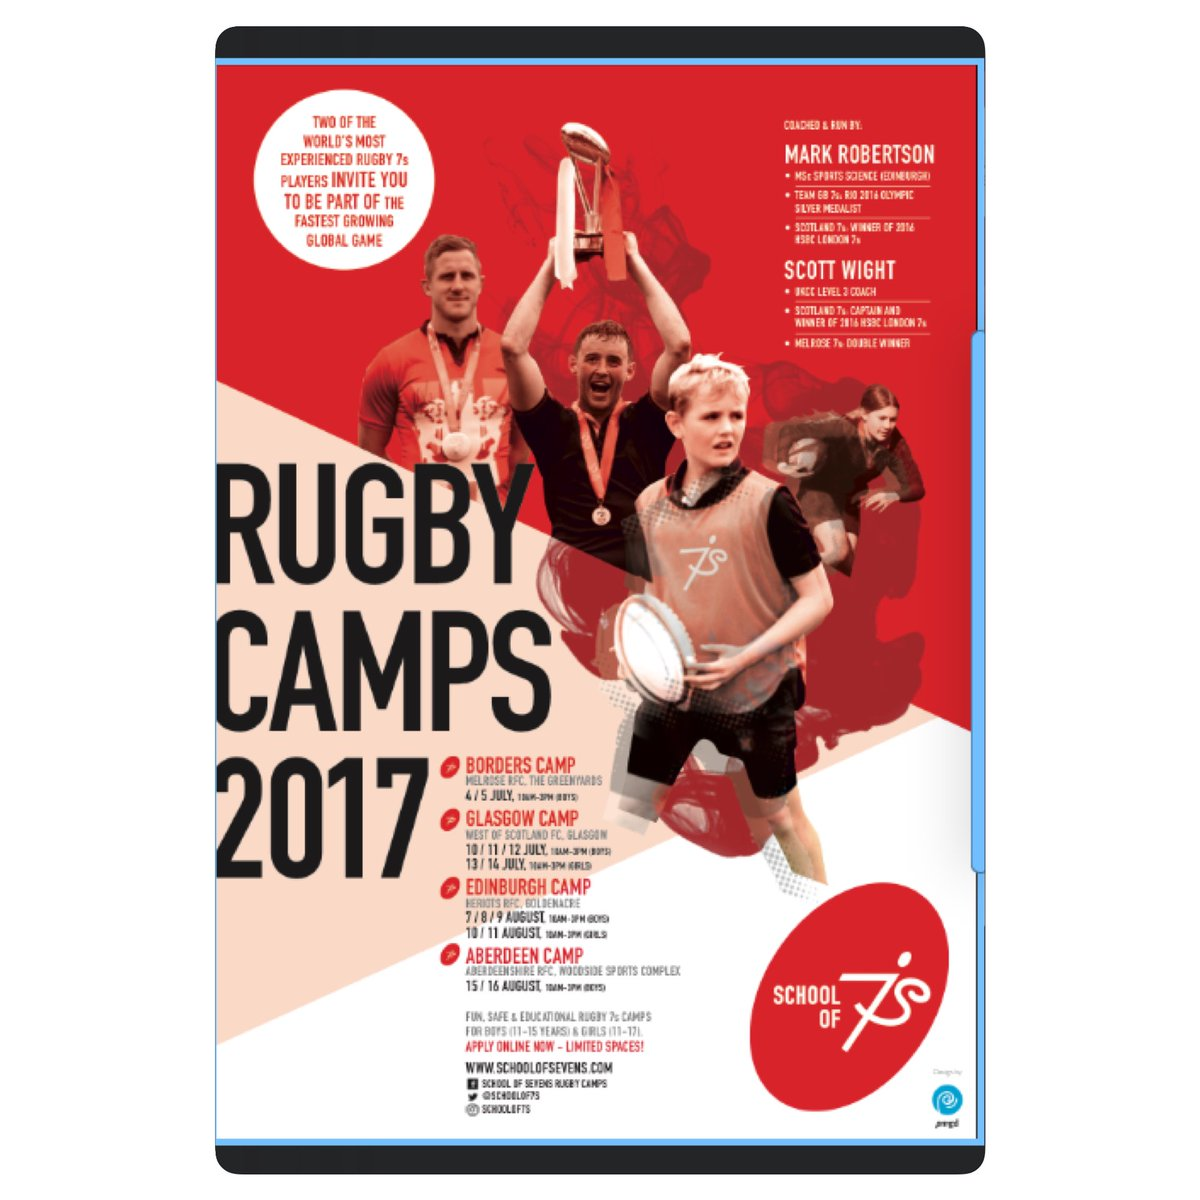 11-15 BOYS have that 7s BUZZ!! Why not SIGN UP to one of our summer camps and come and join in the fun... #rugby7s #growingthegame<br>http://pic.twitter.com/DKKR5F3TT8